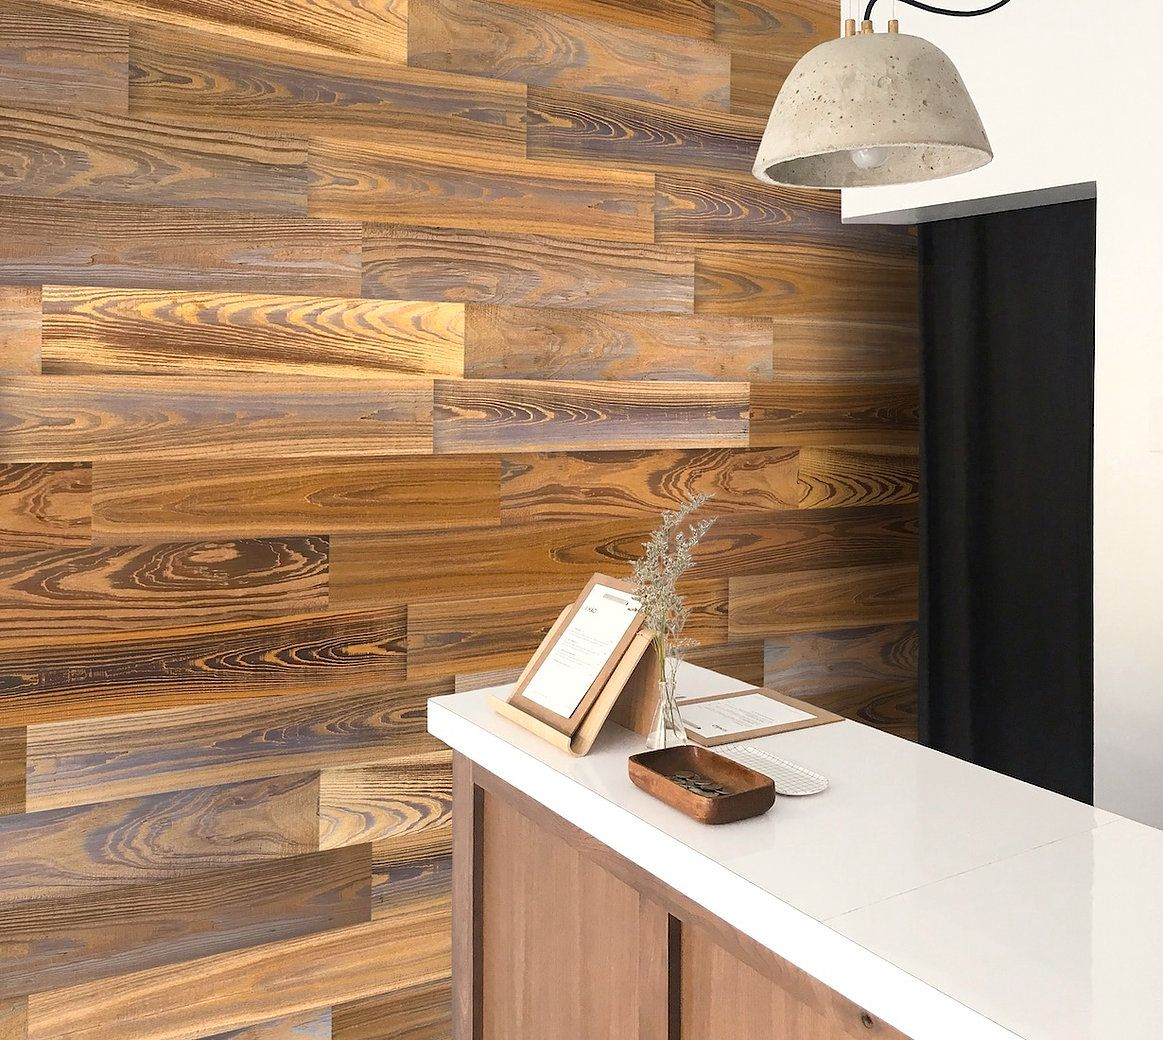 Grainwood Softwood Wall Planks 10 Sf In A Box Wood Wall Panels Wood Panel Walls Pine Wood Walls Wall Paneling